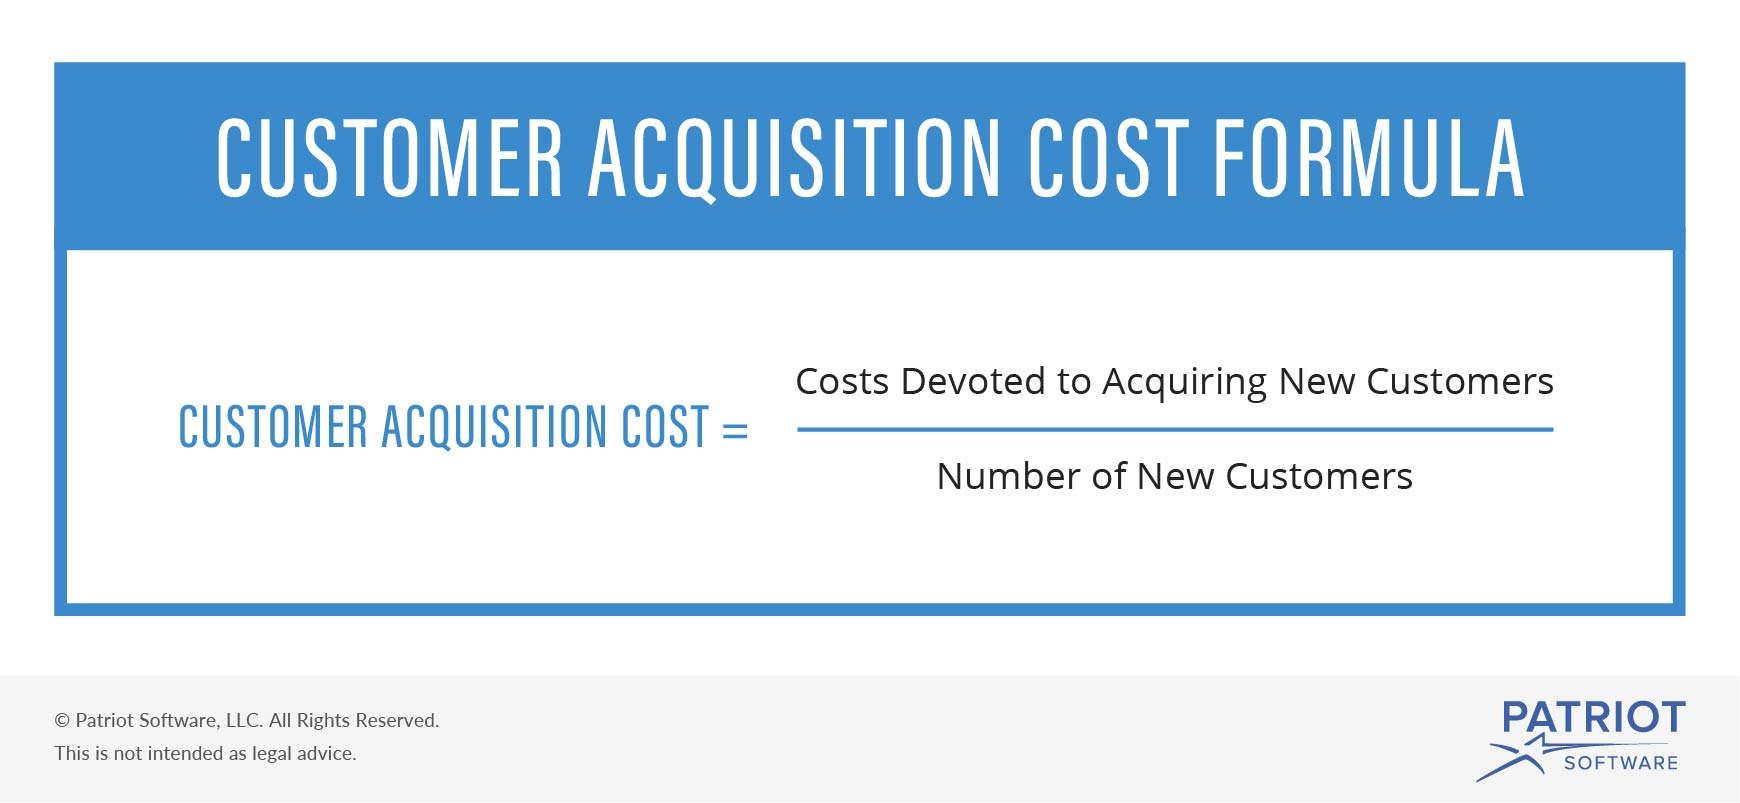 Customer acquisition cost formula